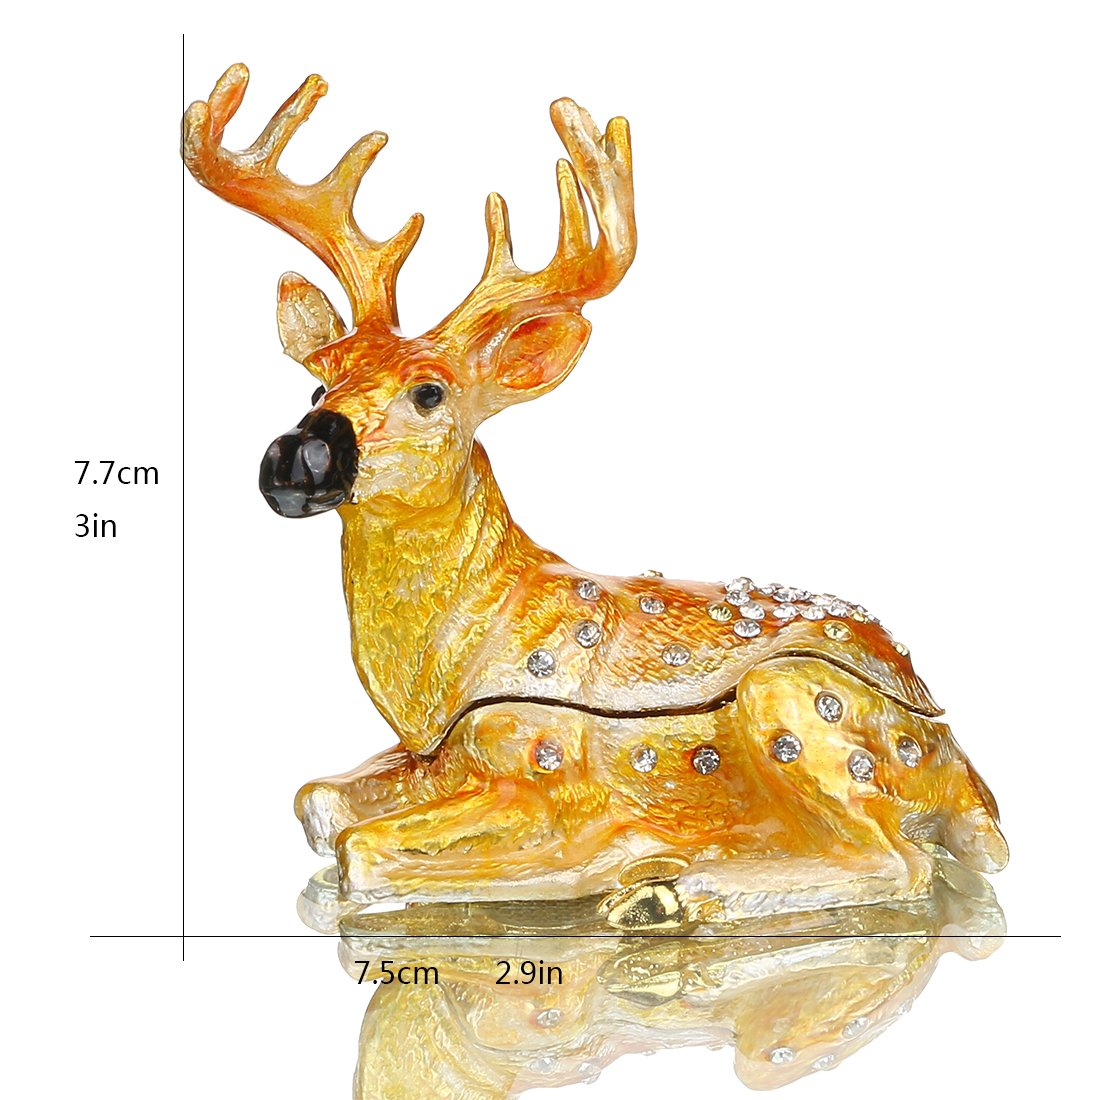 YUFENG Cute Deer Trinket Box Hinged for Girls Animal Figurine Collectible Wedding Ring Holder Favor Metal Table Centerpiece by YUFENG (Image #3)